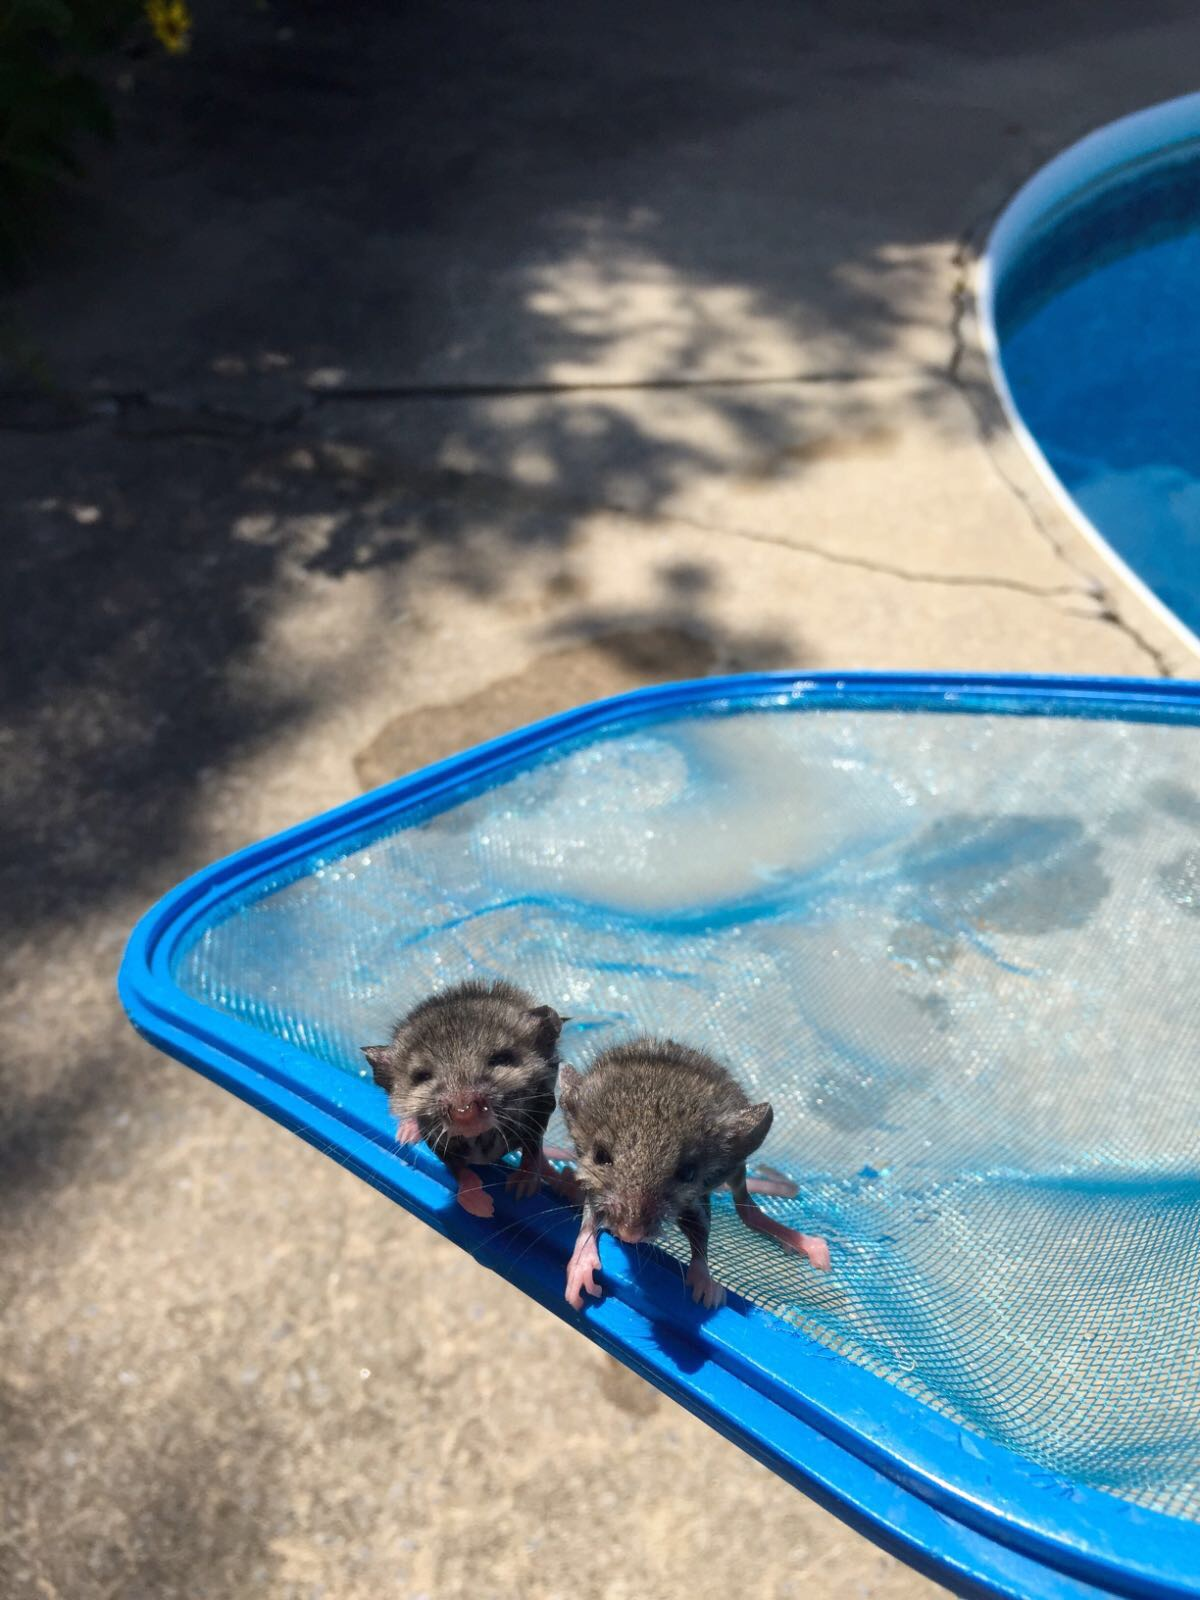 A bit unconventional but I rescued these two grateful little guys from my pool